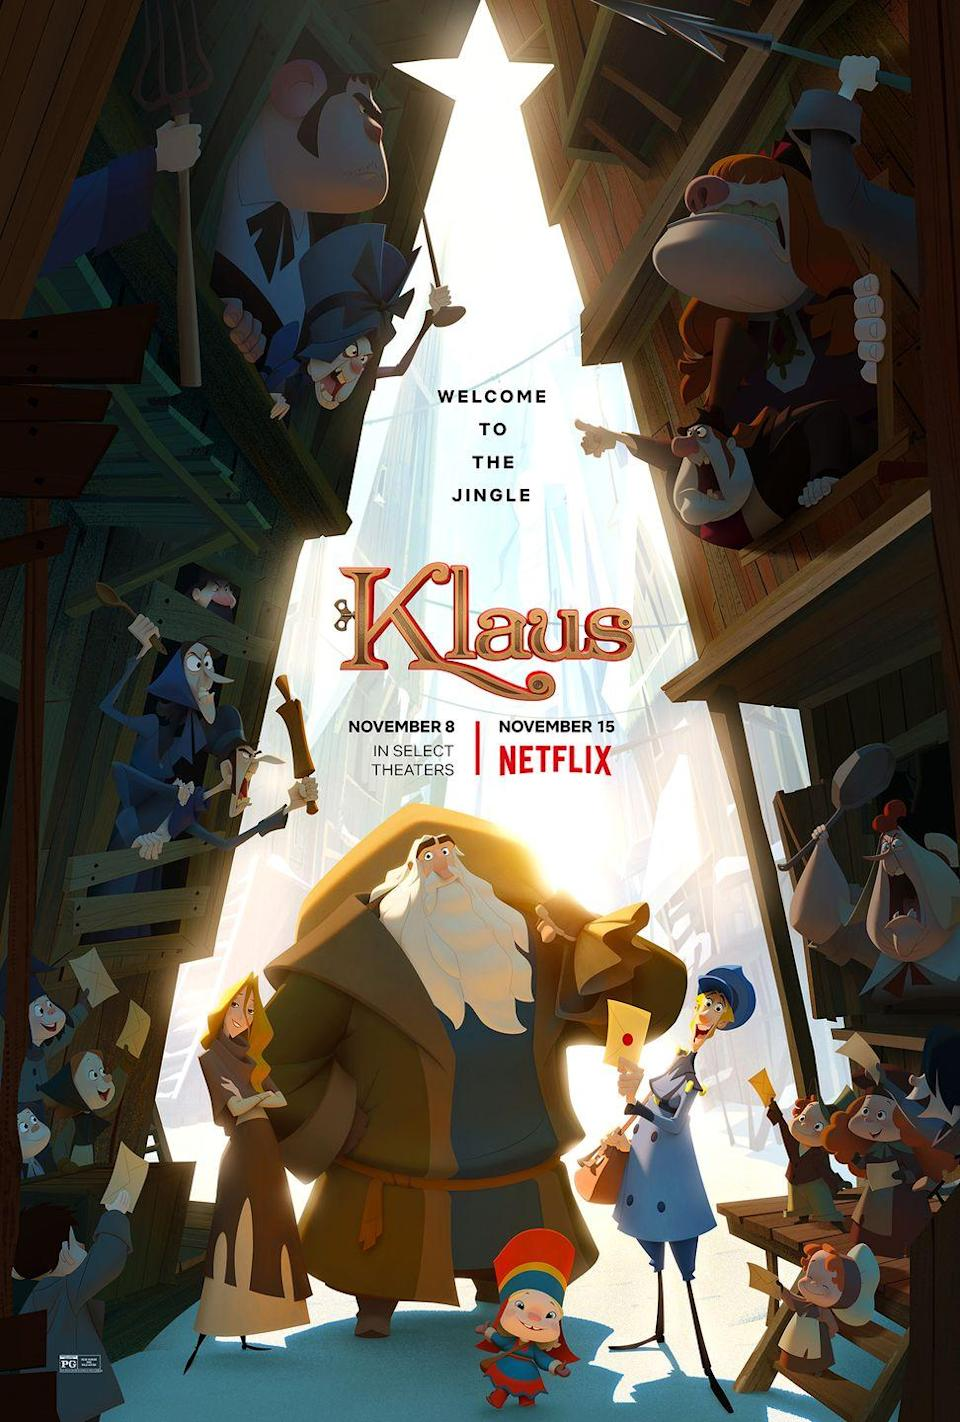 """<p>This Netflix original about a postman who befriends a reclusive toymaker makes for a great family Christmas film — especially with the beautiful animations that will leave you <em>really</em> feeling the holiday magic.  </p><p><a class=""""link rapid-noclick-resp"""" href=""""https://www.netflix.com/title/80183187"""" rel=""""nofollow noopener"""" target=""""_blank"""" data-ylk=""""slk:WATCH NOW"""">WATCH NOW</a> </p>"""